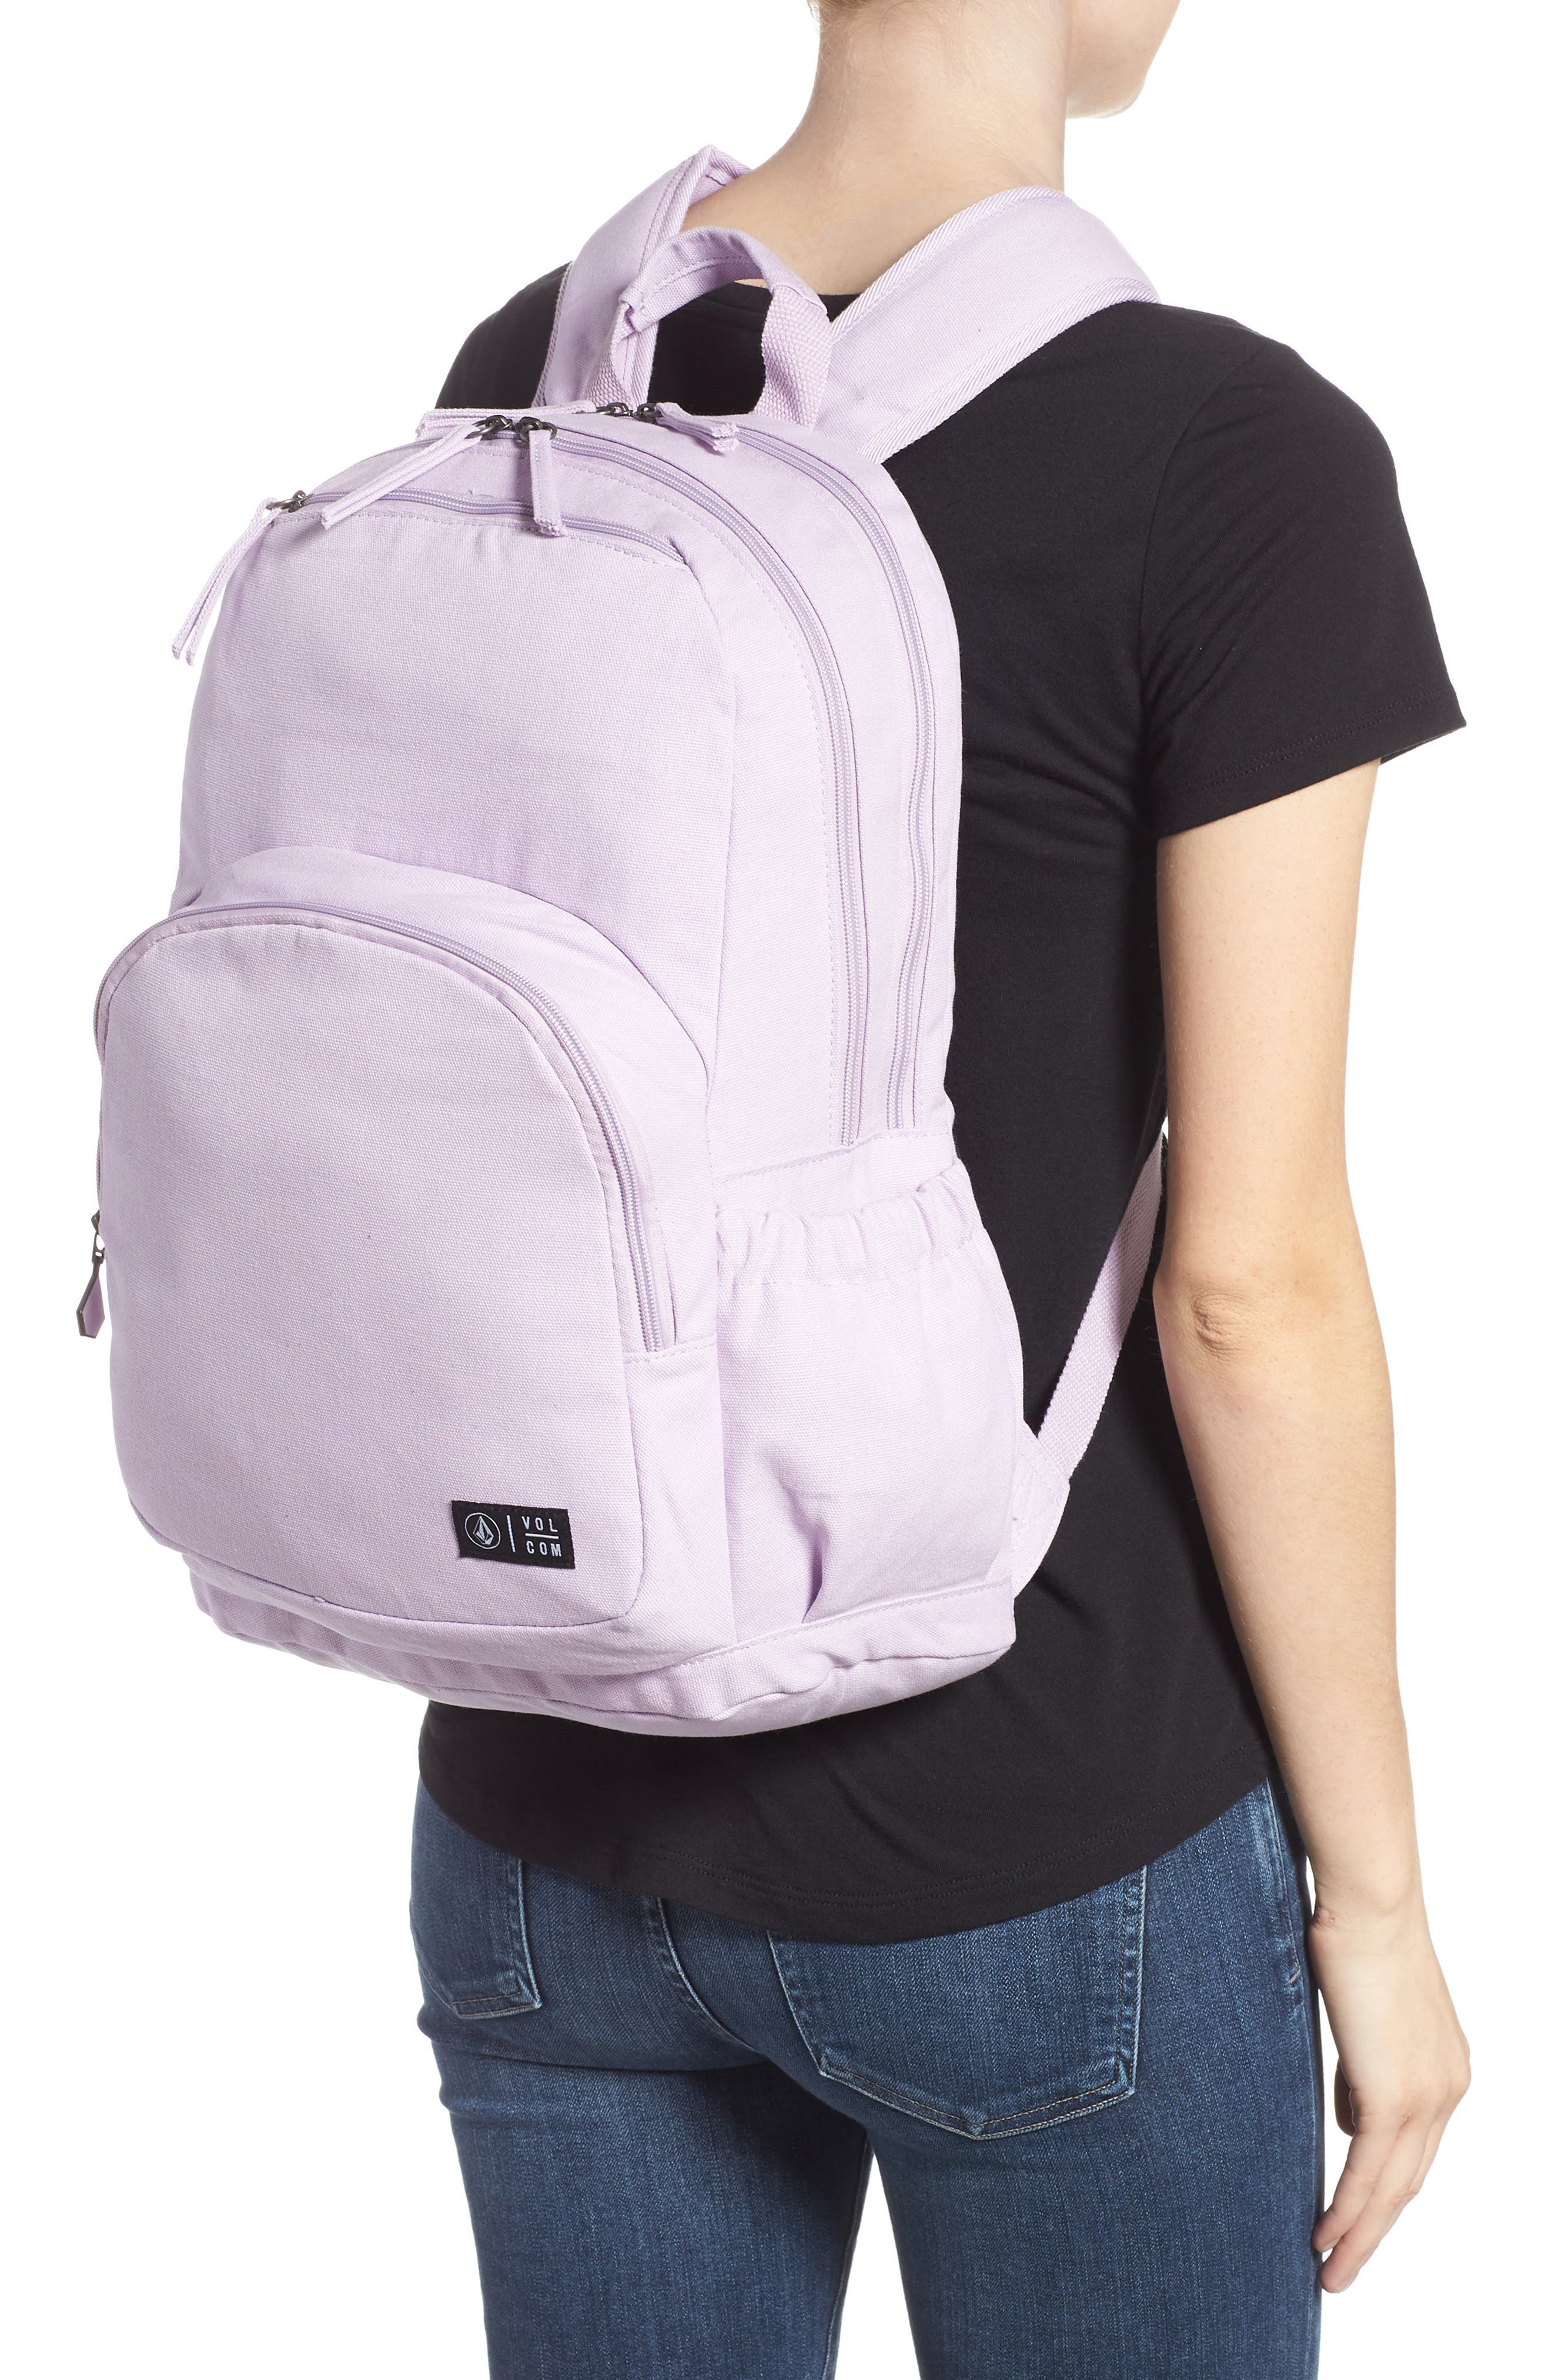 Field Trip Canvas Backpack,                             Alternate thumbnail 2, color,                             500